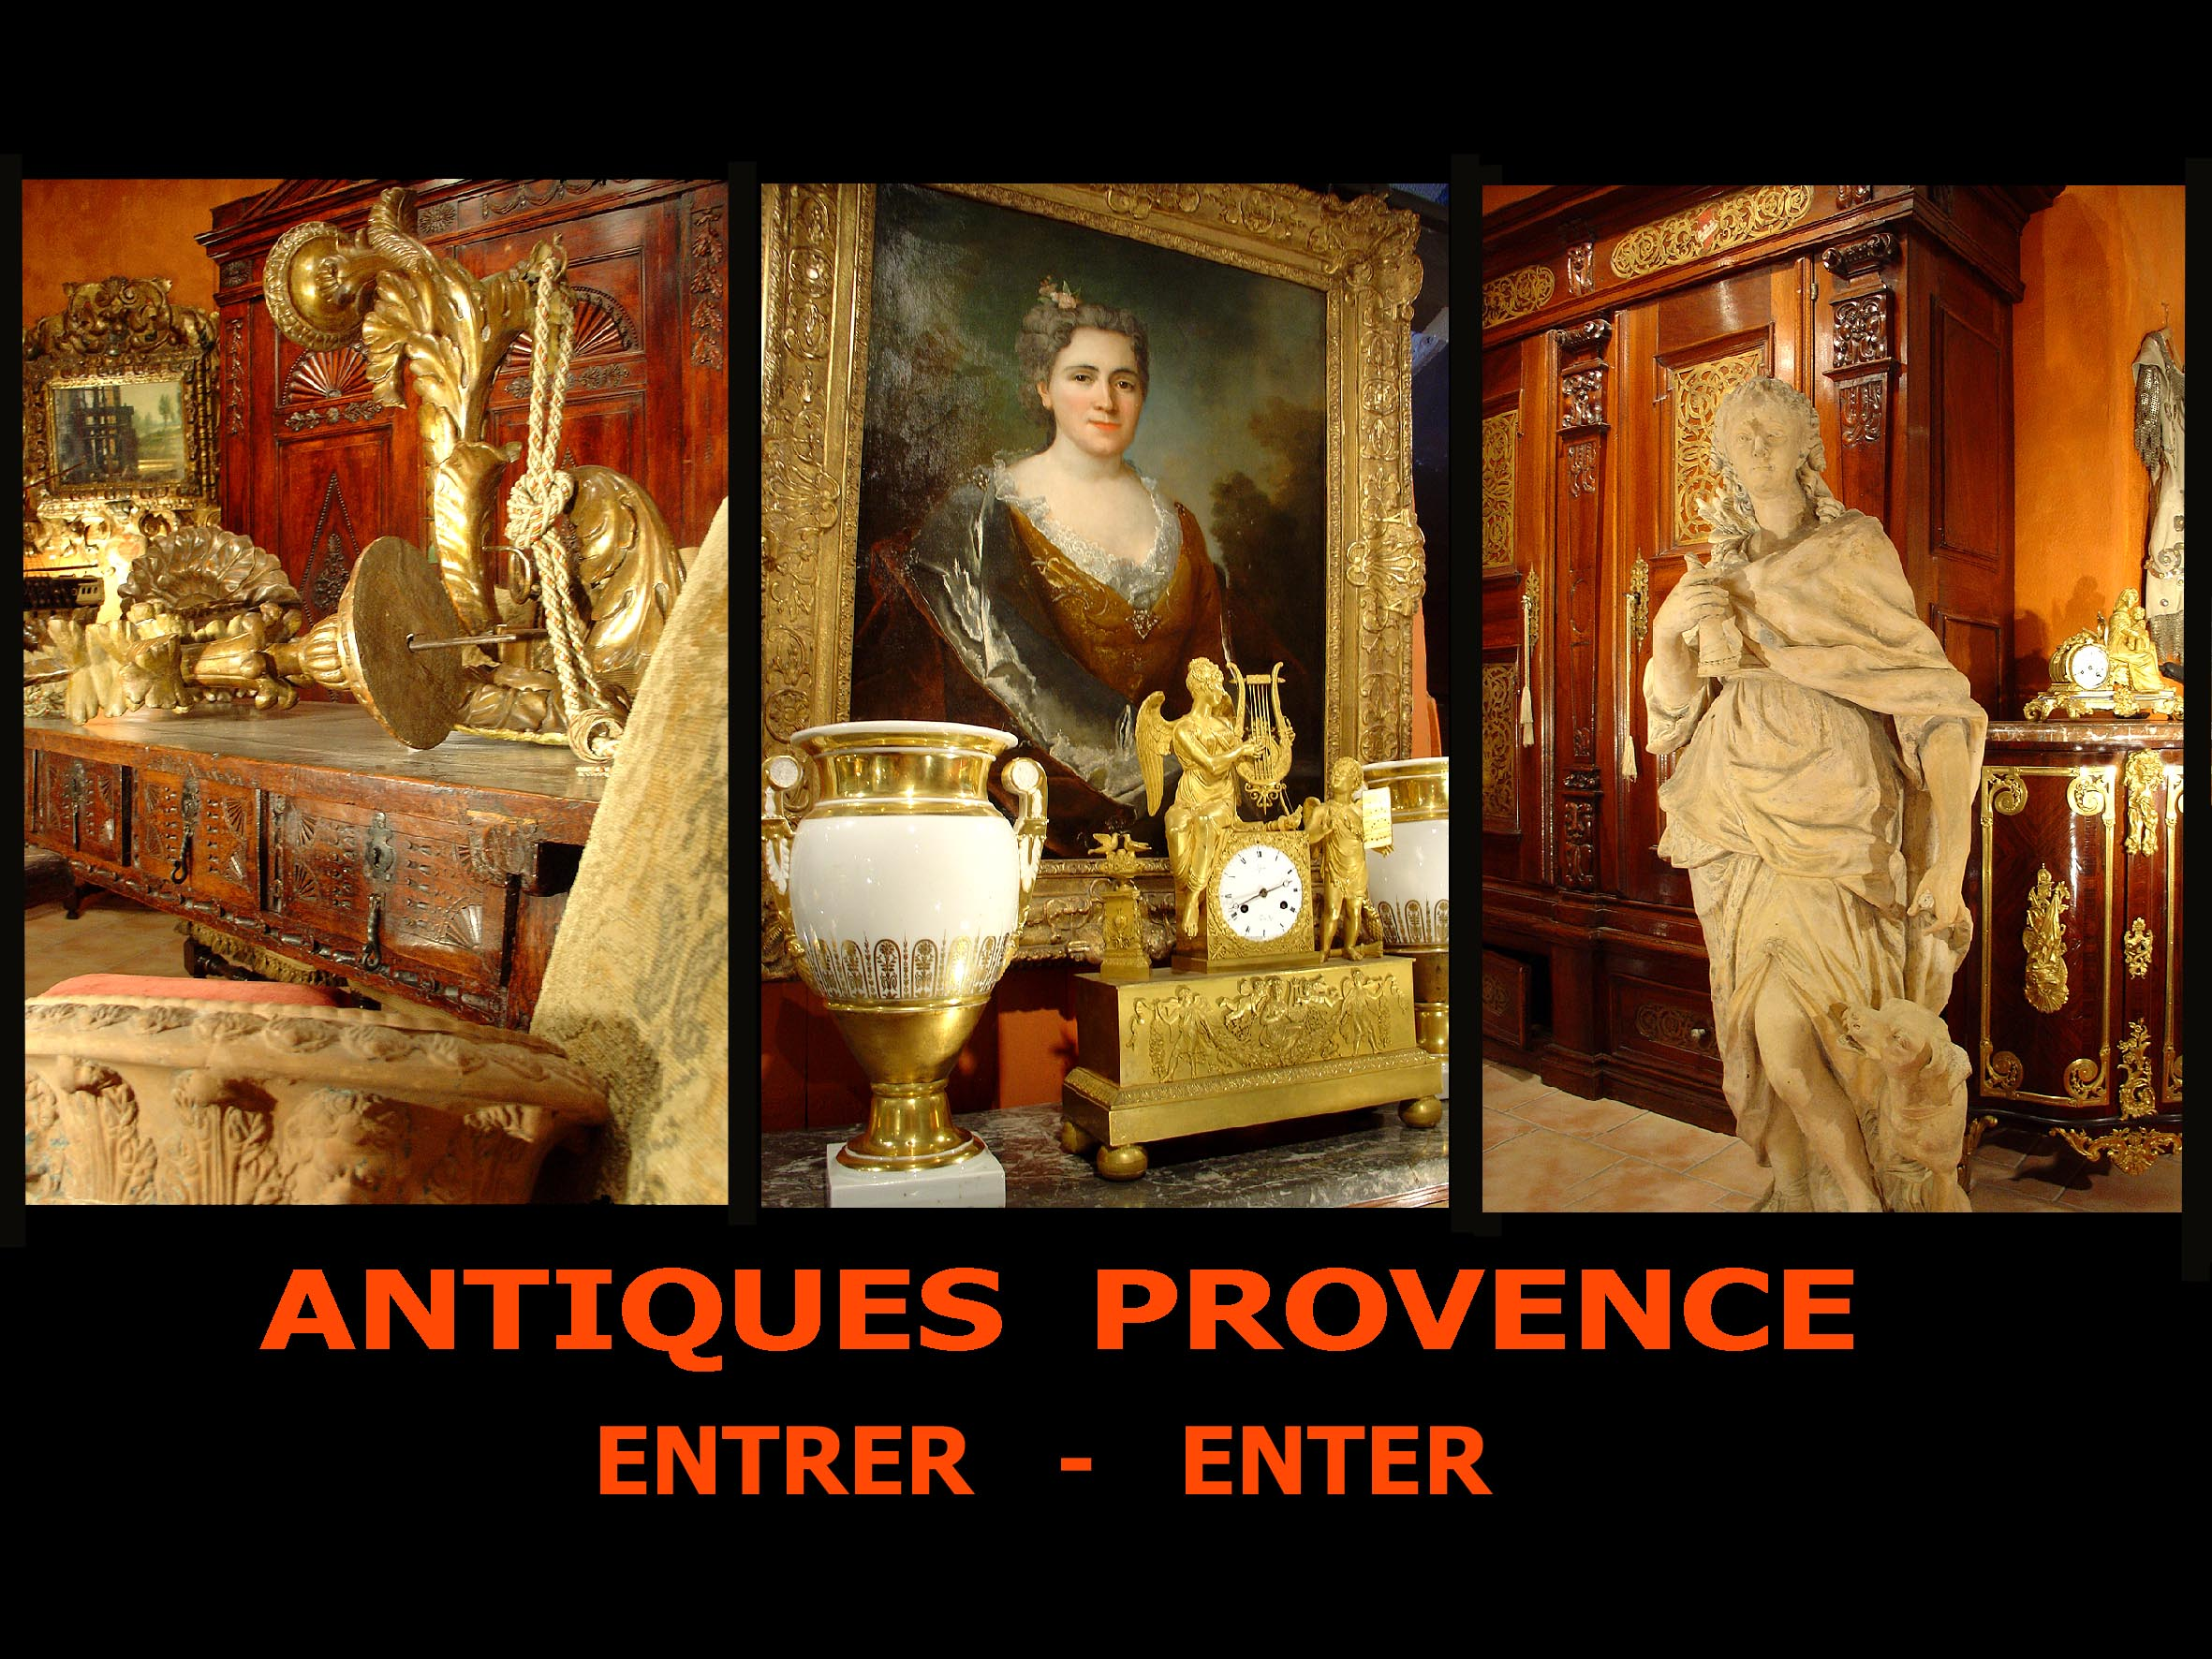 Antiques provence :Fine French and european antiques all periods up to charles X, Furniture - Paintings - Statuary - Accessories, Isle sur la sorgue, Vaucluse.